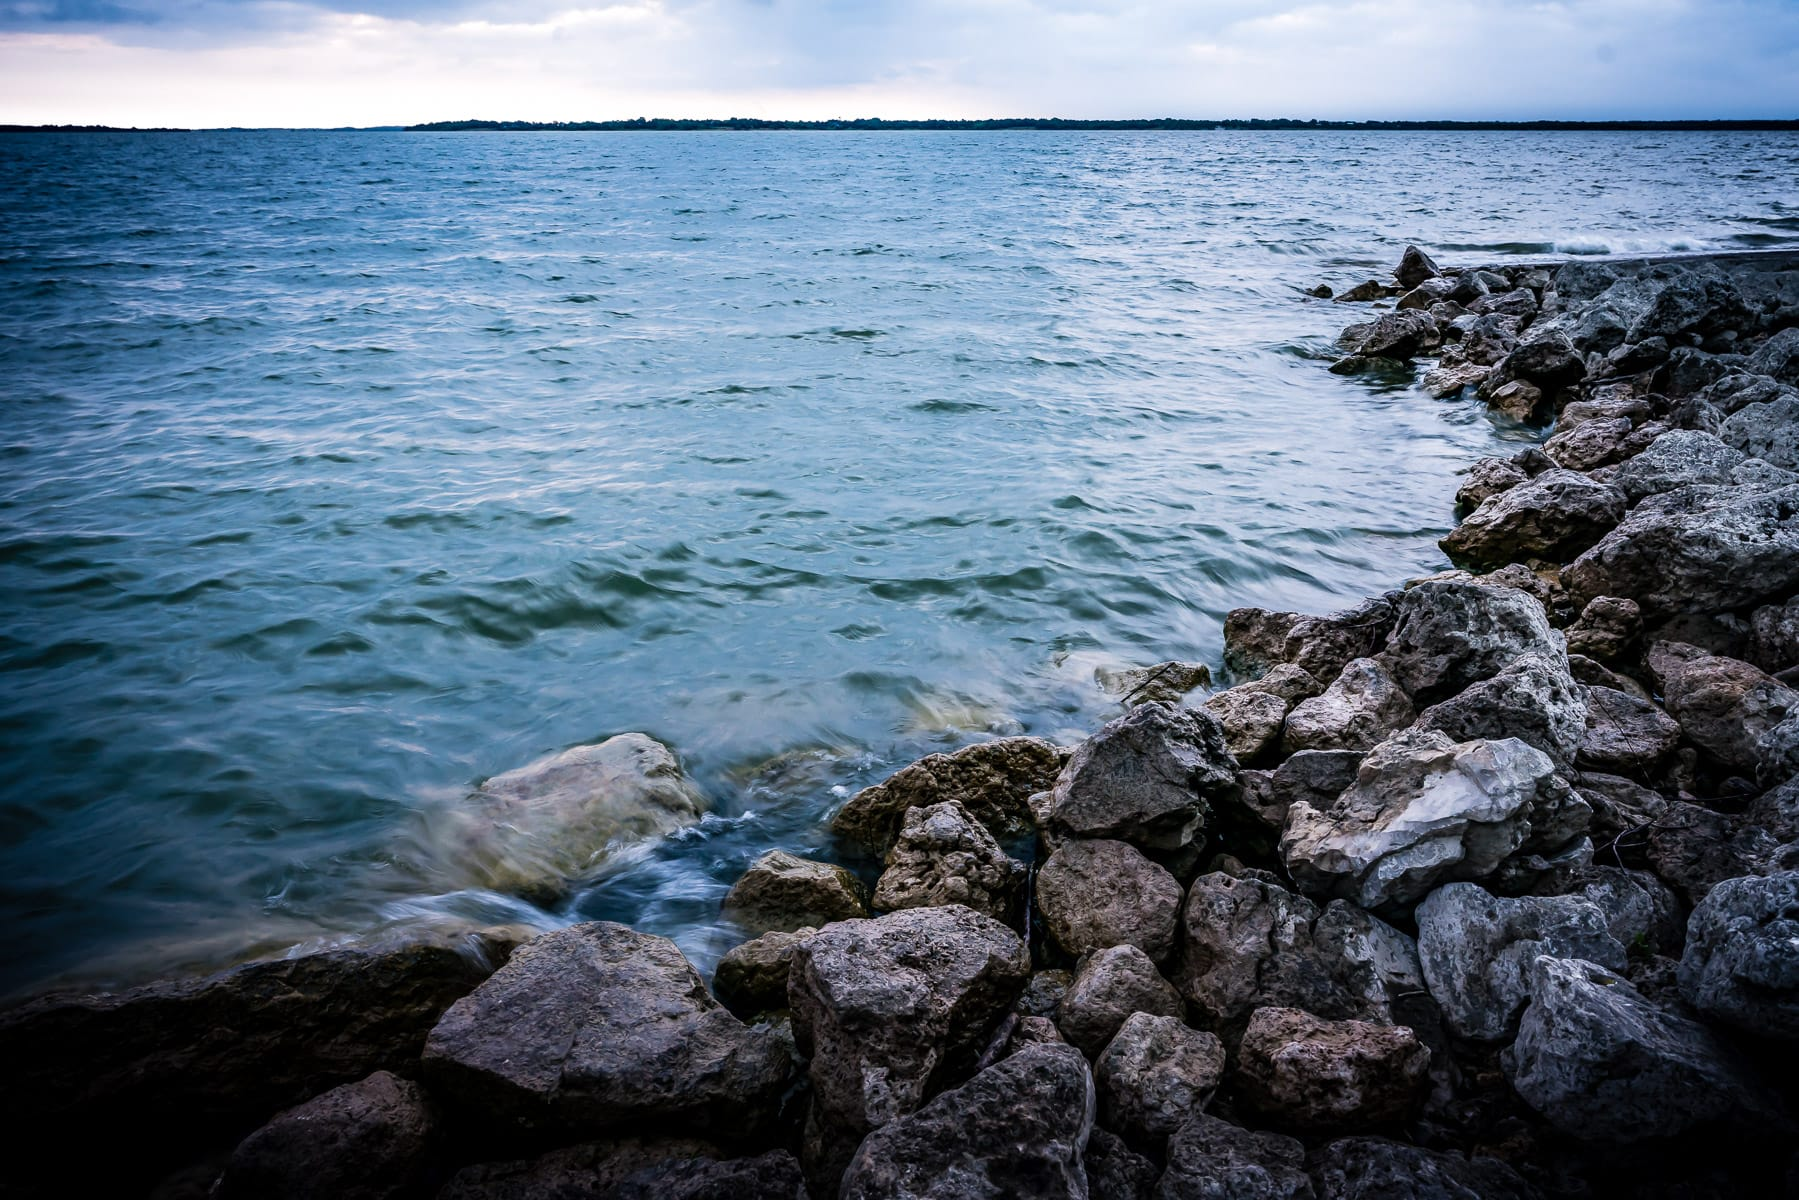 Waves lap at the rocky shore of North Texas' Lake Lavon.